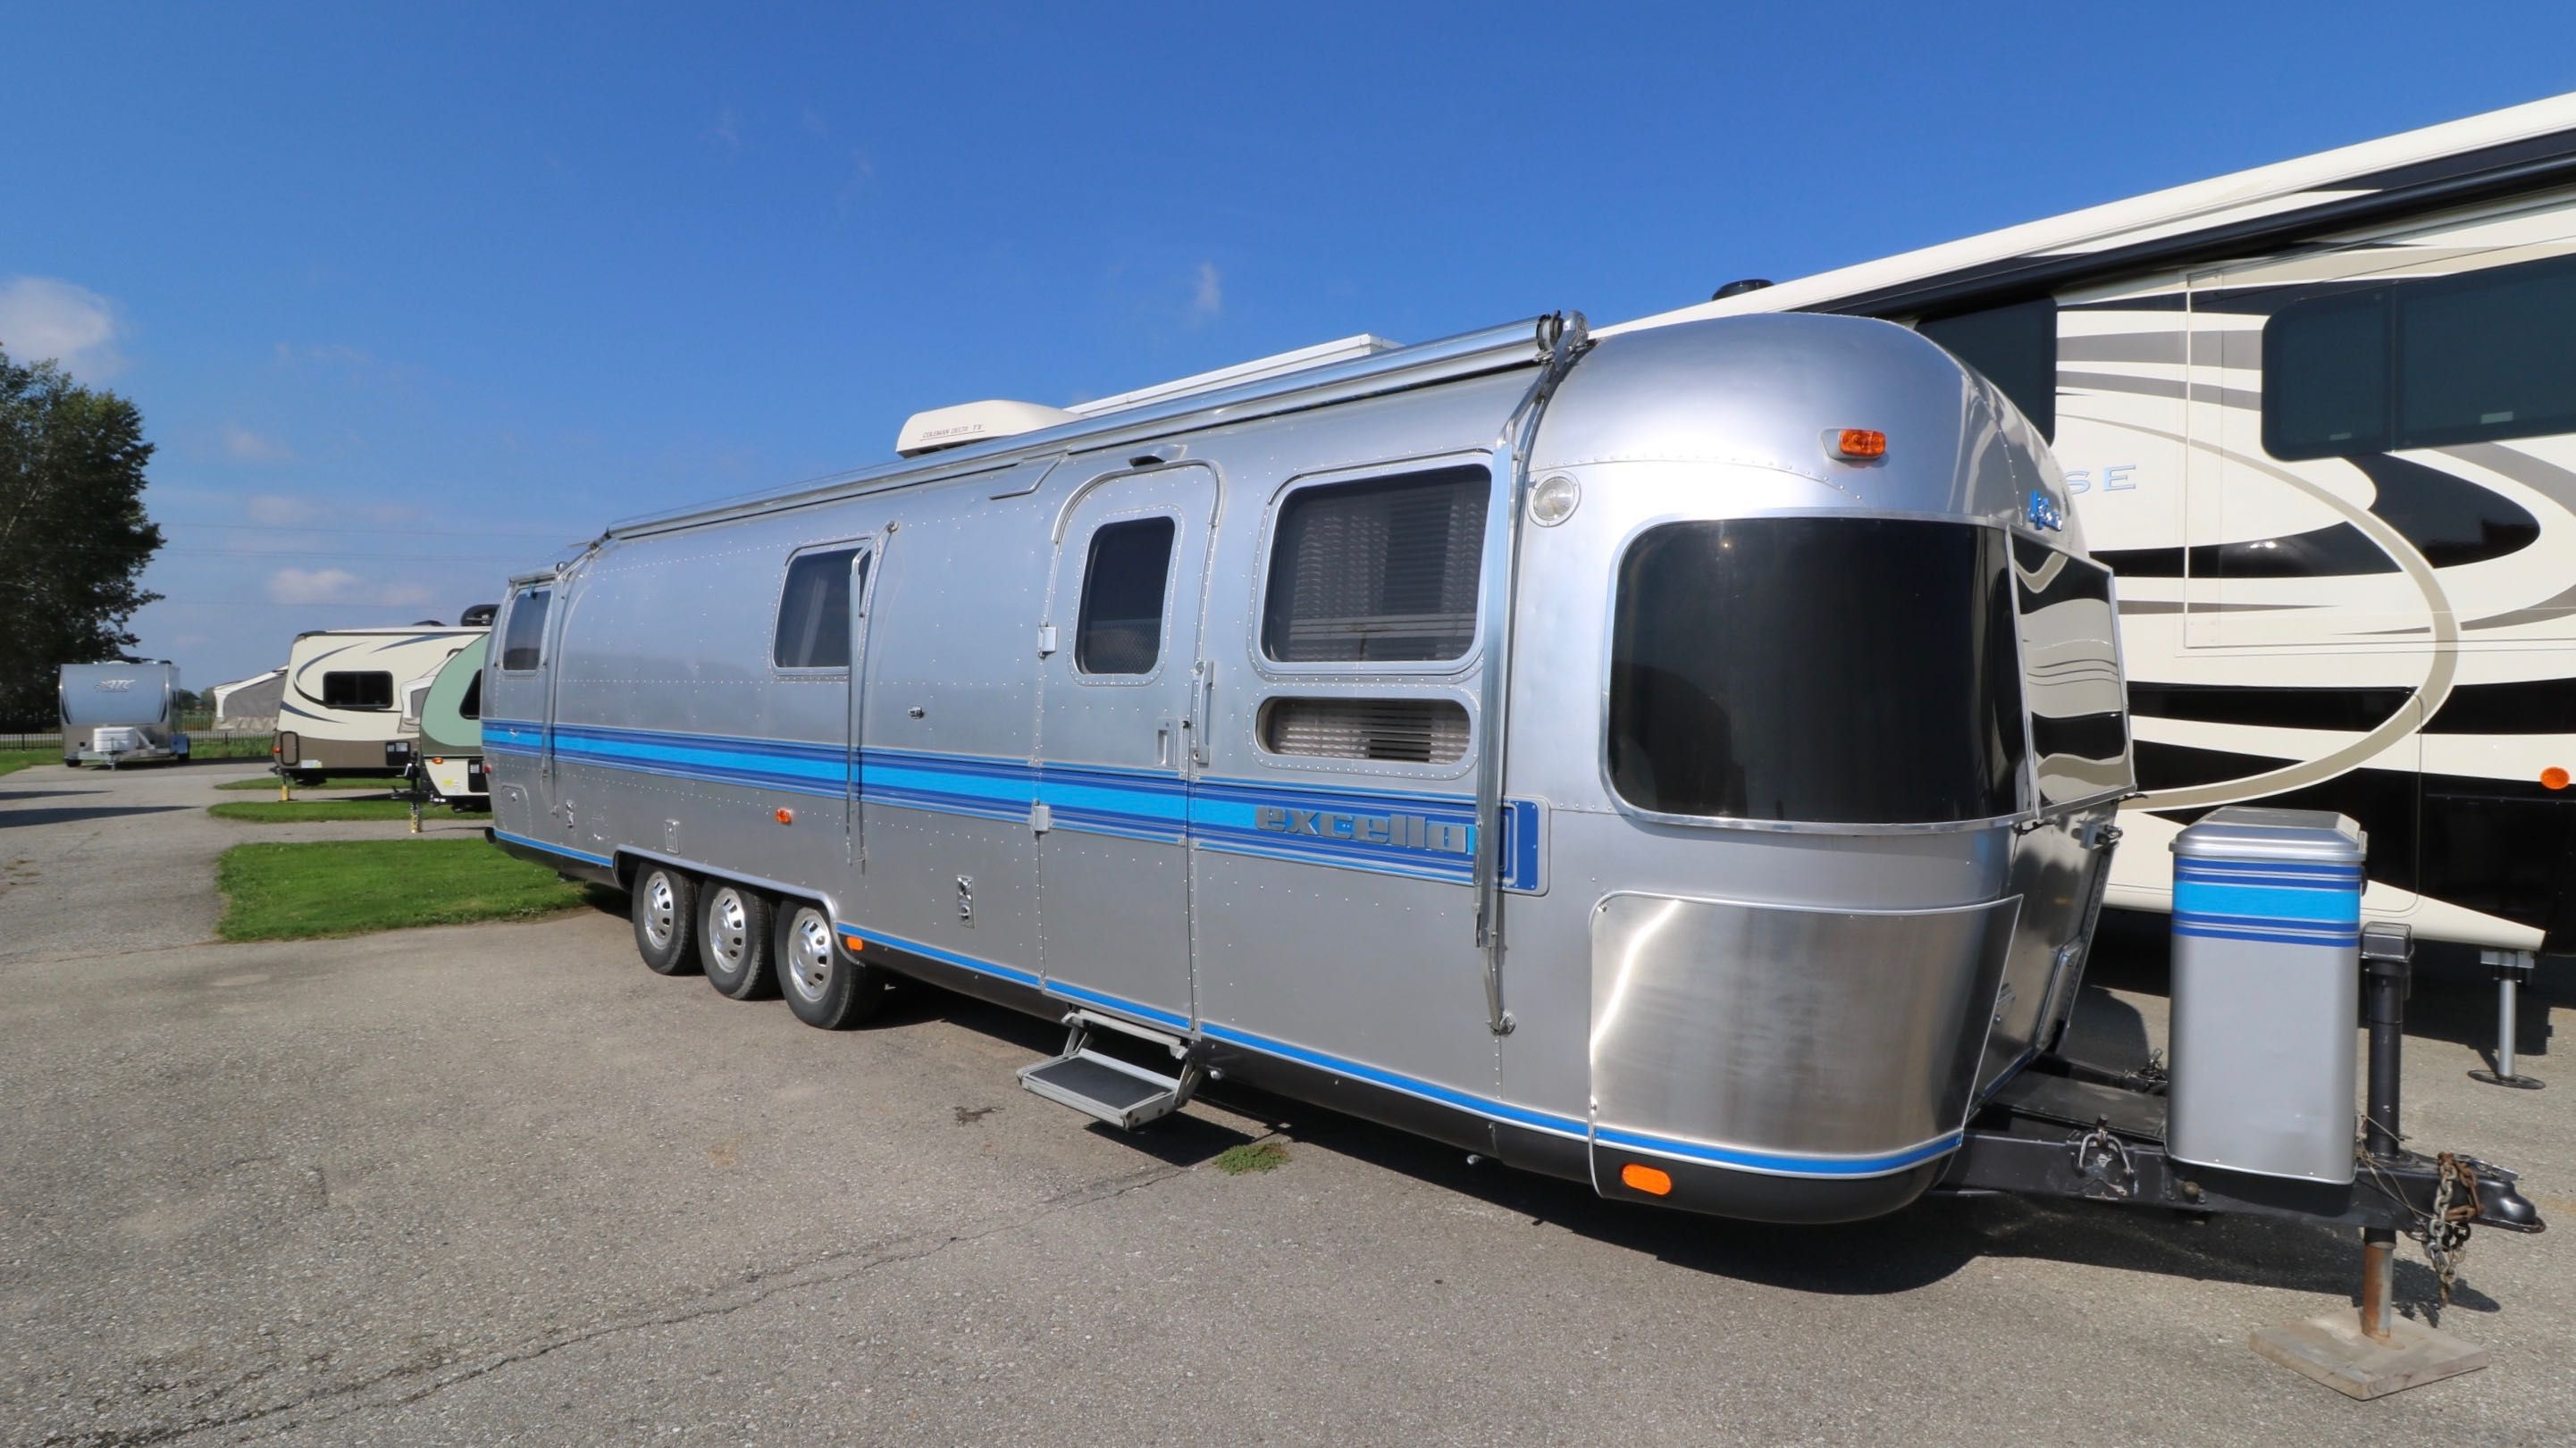 Airstream Travel Trailers - Can-Am RV Centre